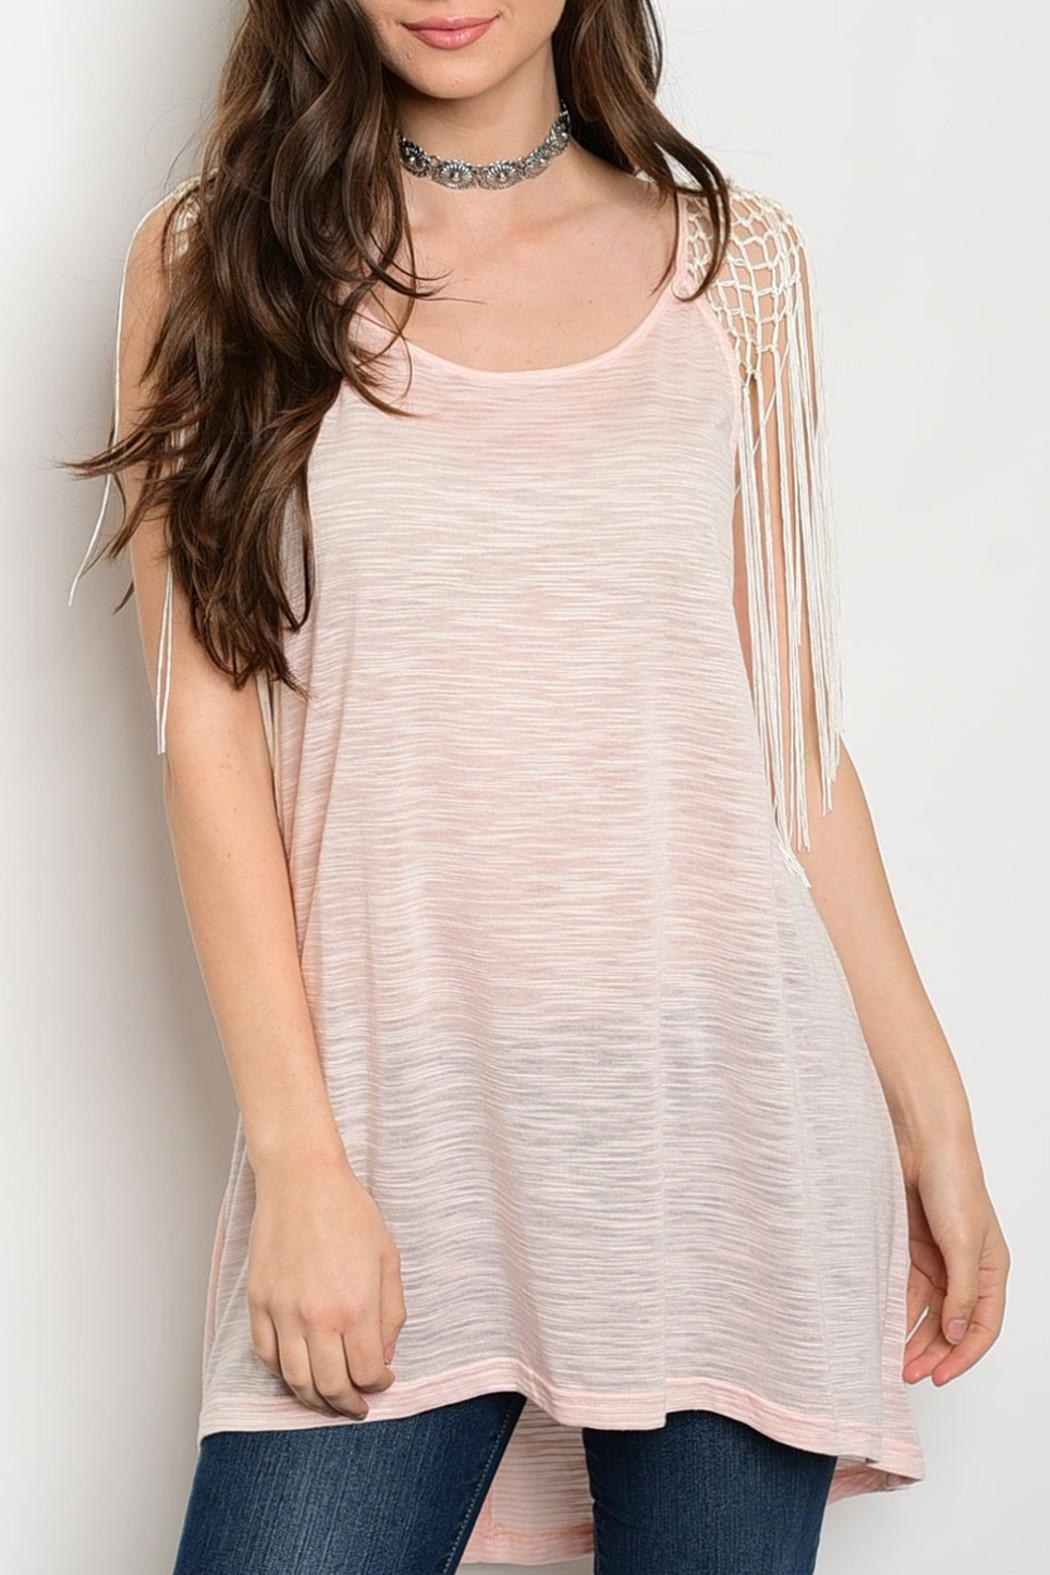 Soieblu Pink Tunic Top - Front Cropped Image